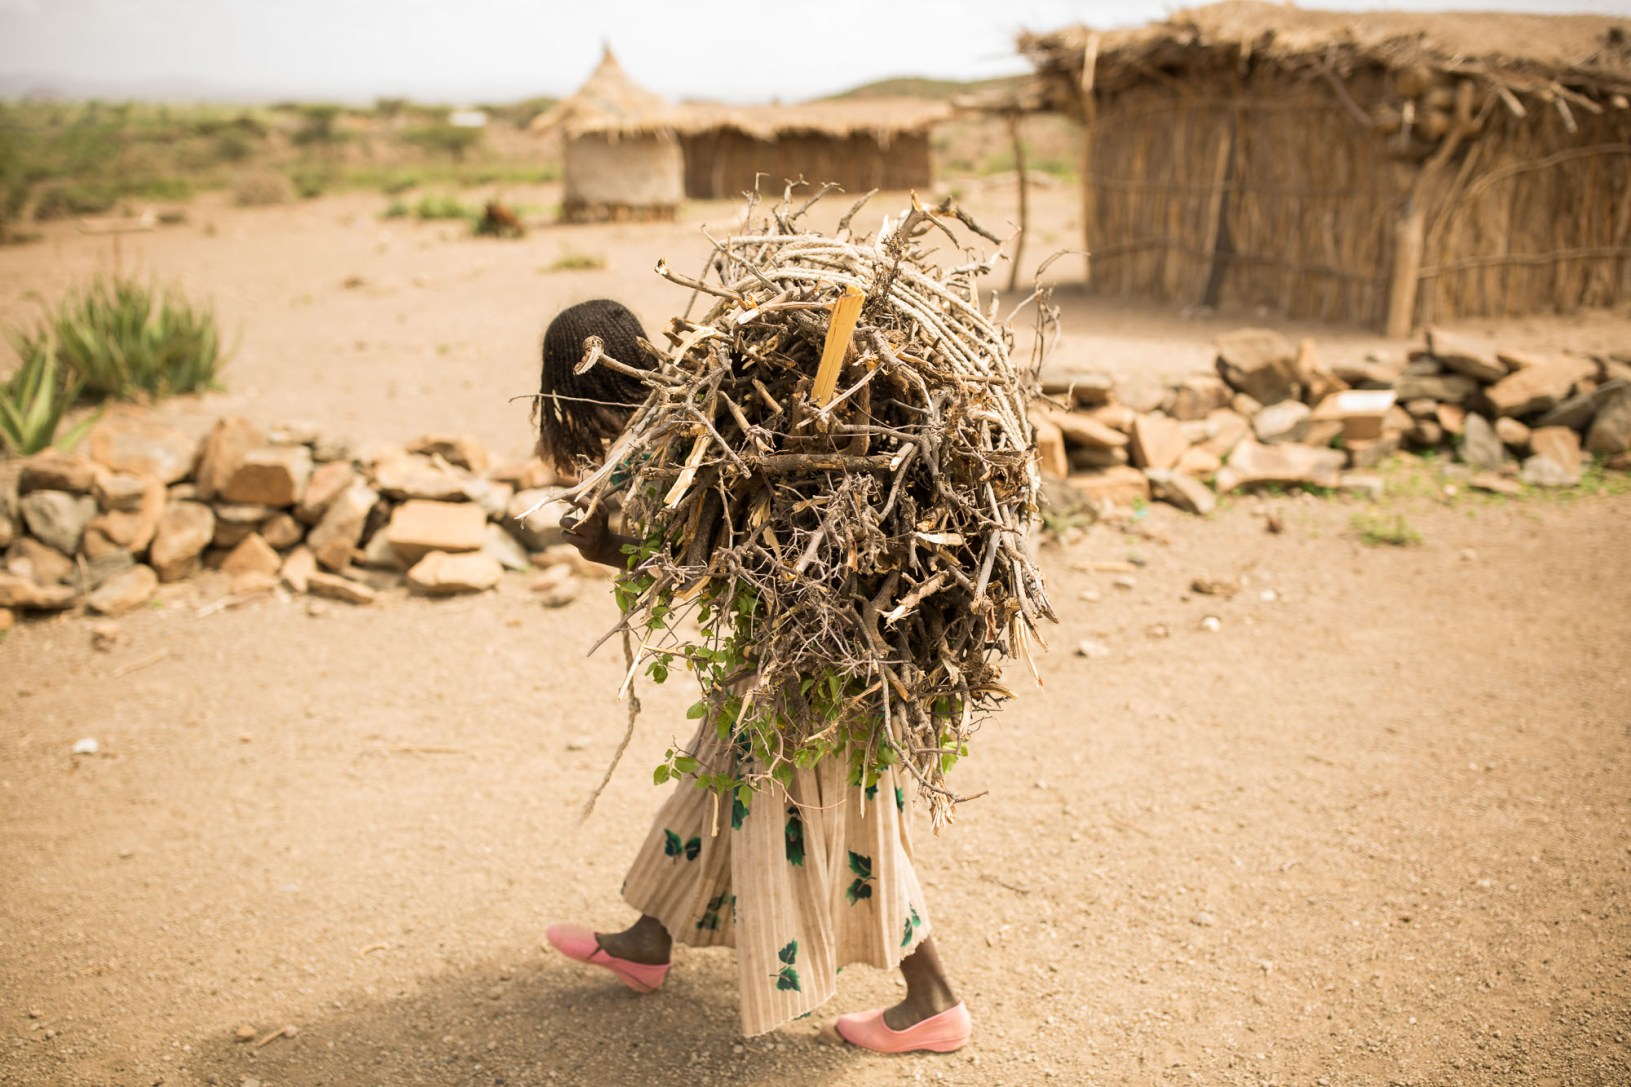 A girl carries a heavy load of firewood in Fentale, Ethiopia.